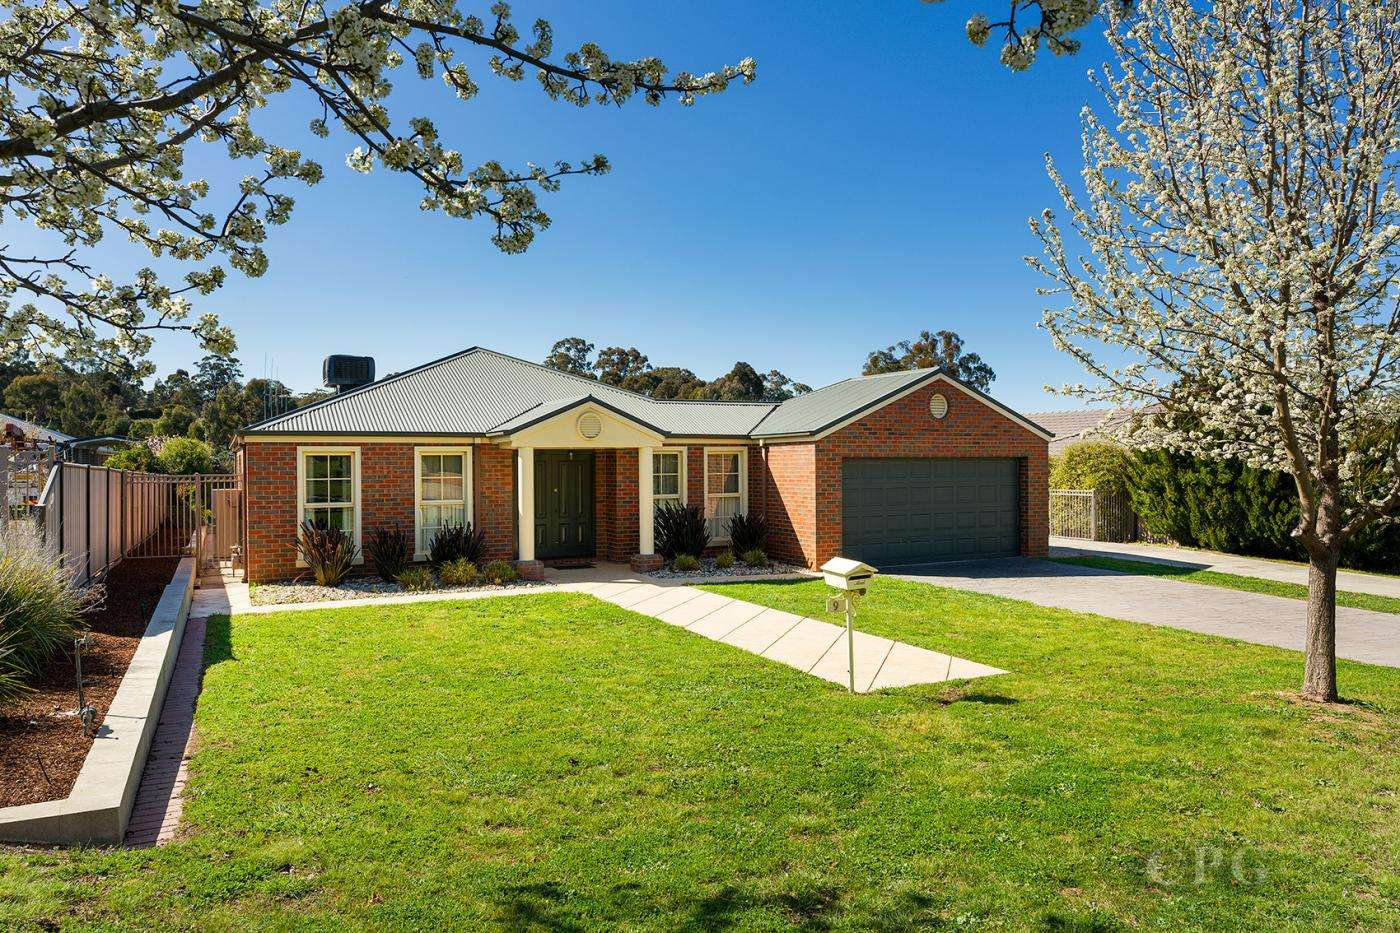 Main view of Homely house listing, 9 Lawrence Park Drive, Castlemaine, VIC 3450